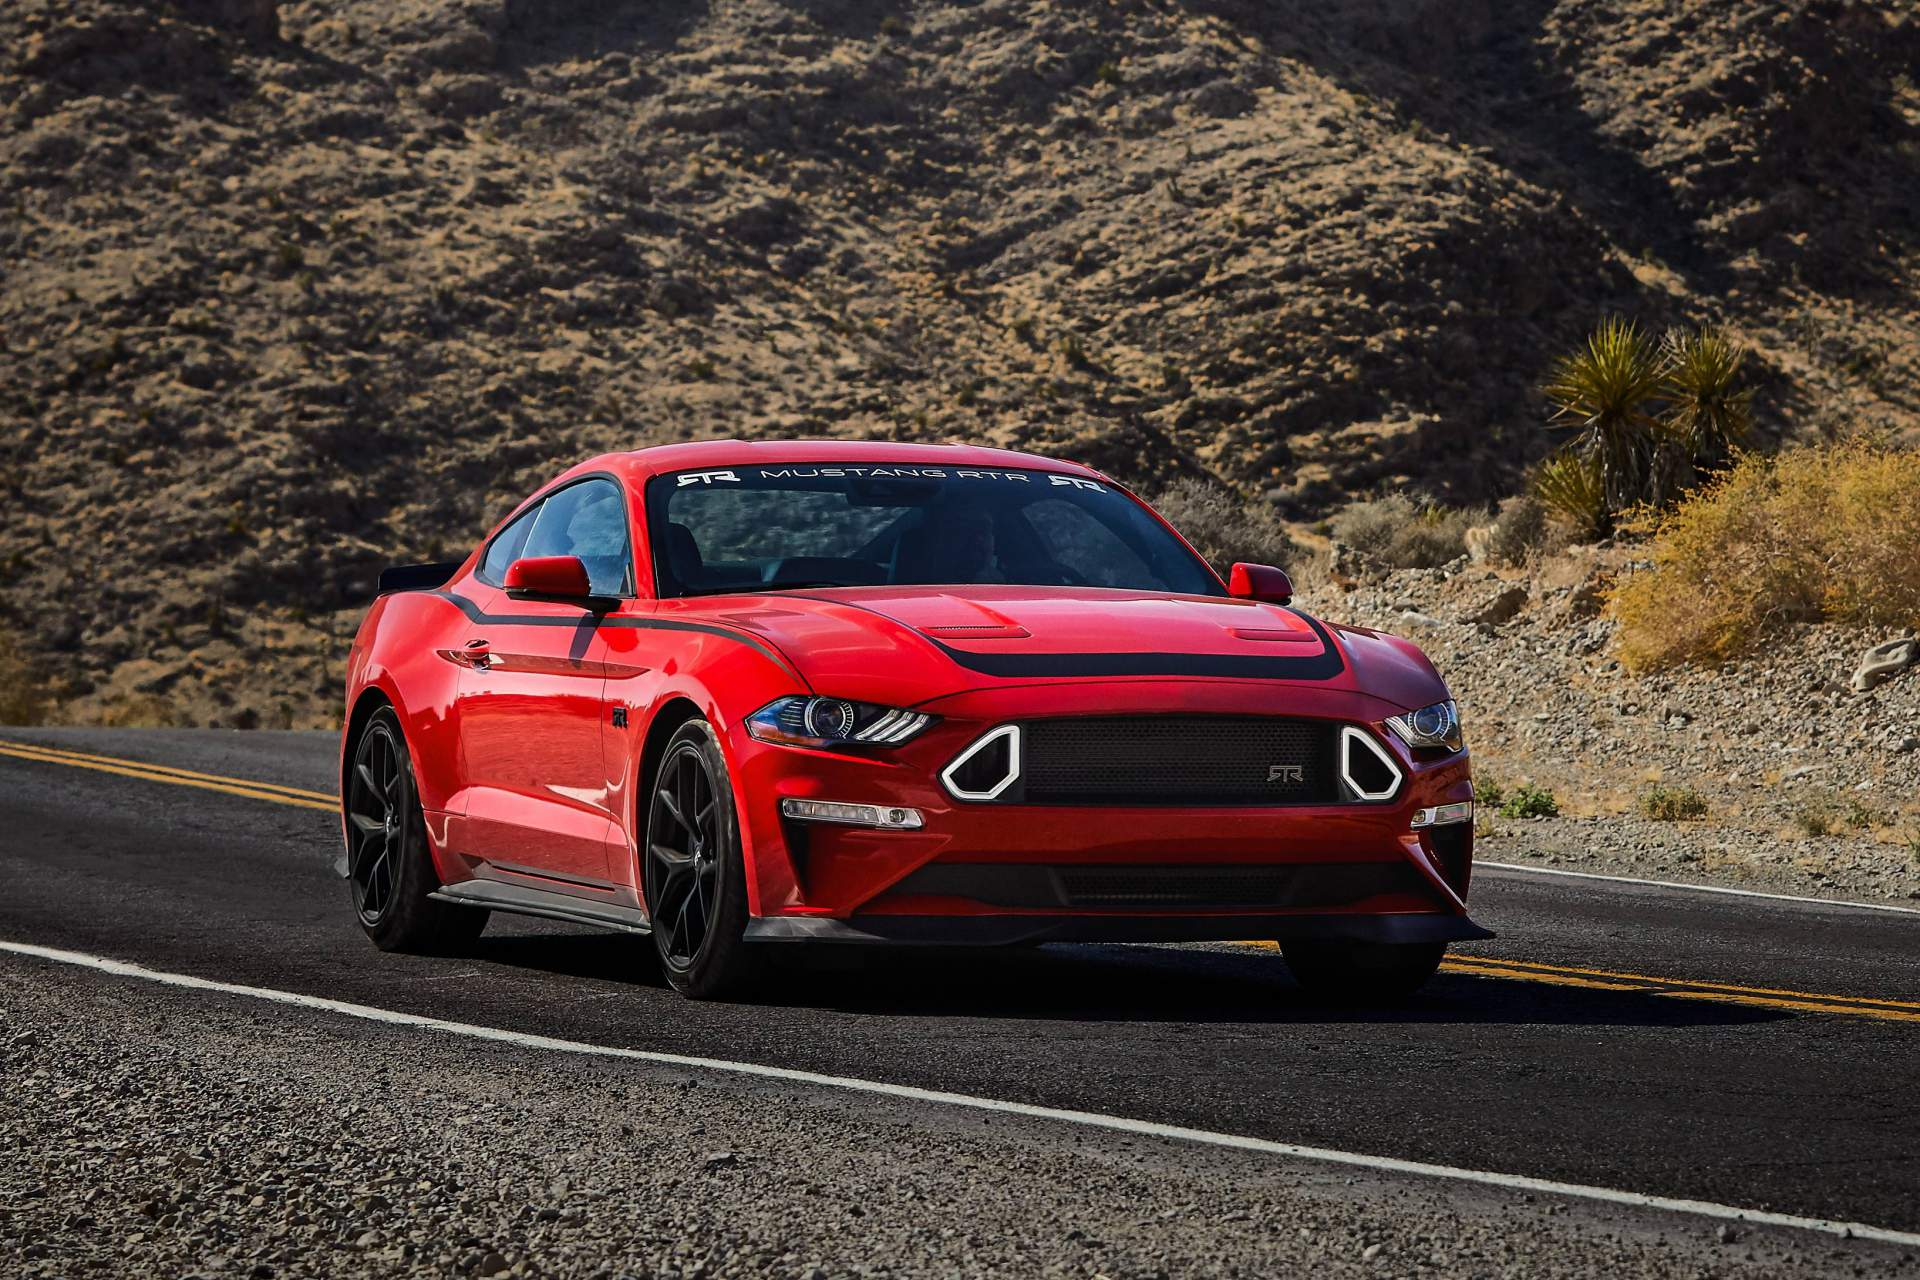 Ford Mustang Series 1 RTR